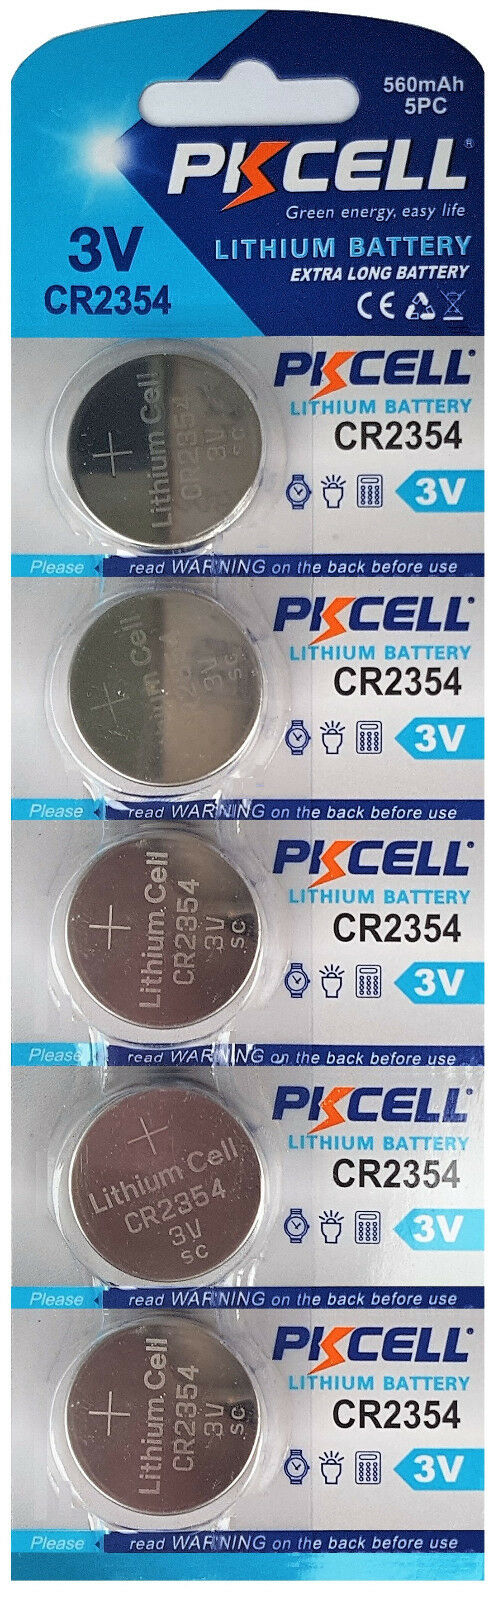 ☀ ☀ ☀ ☀ ☀ 5 x CR2354 3V Lithium Battery without deepening Groove PKCELL